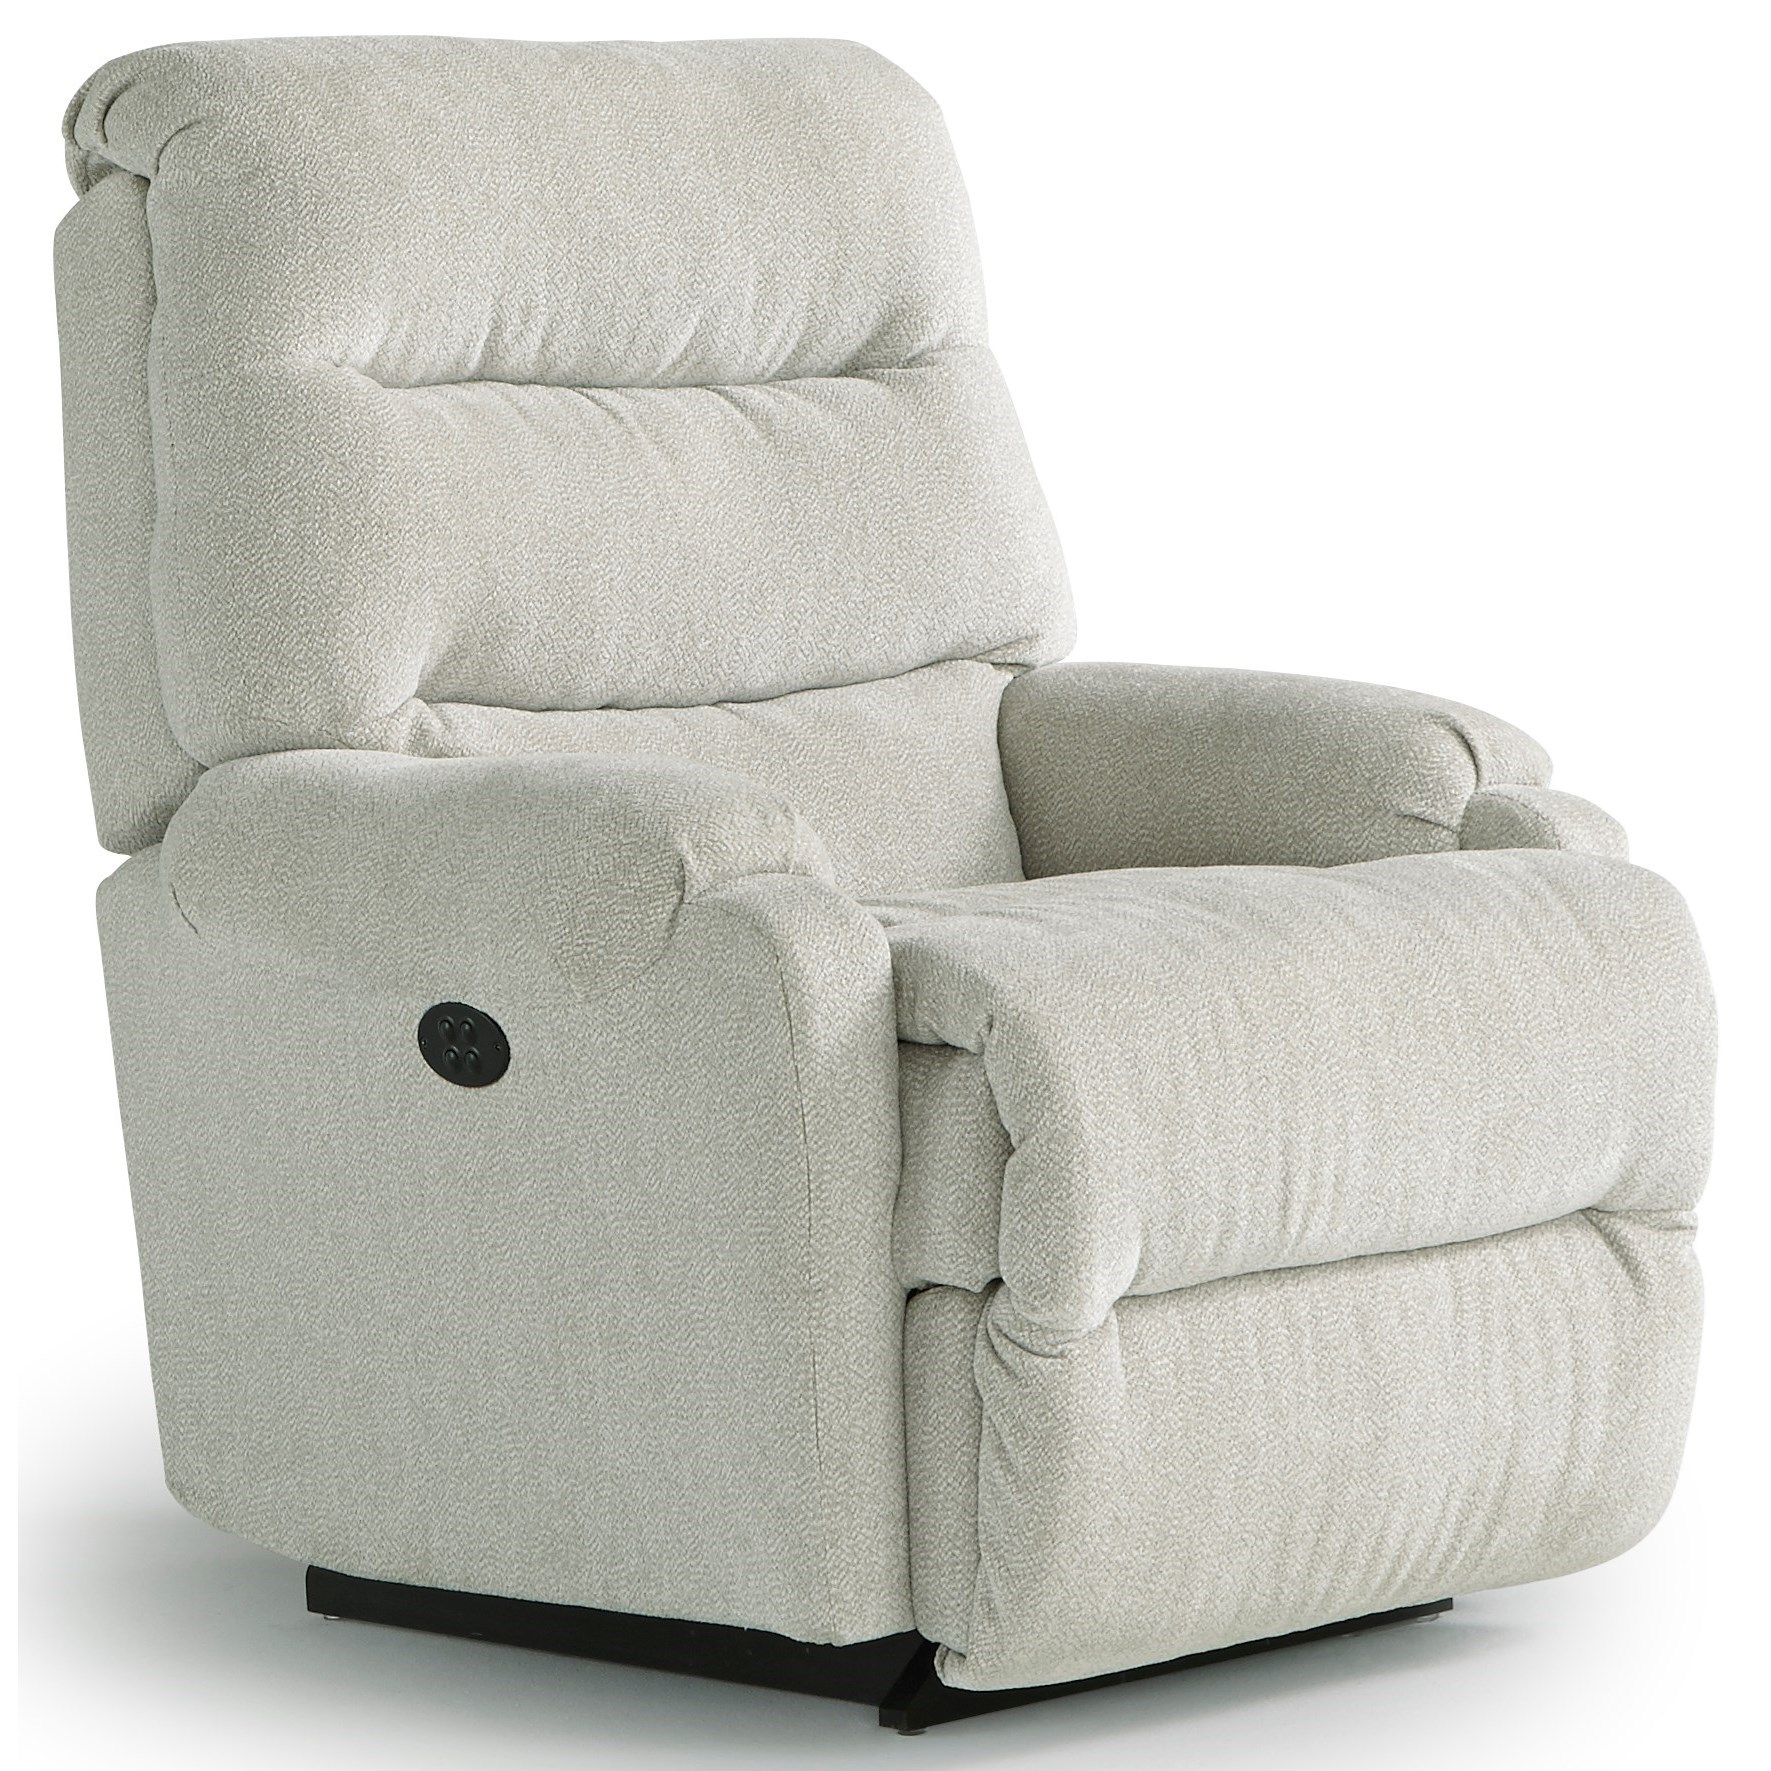 Best Rated Small Recliners Petite Recliners Sedgefield Rocker Recliner With Cushioned Seat By Best Home Furnishings At Lapeer Furniture Mattress Center